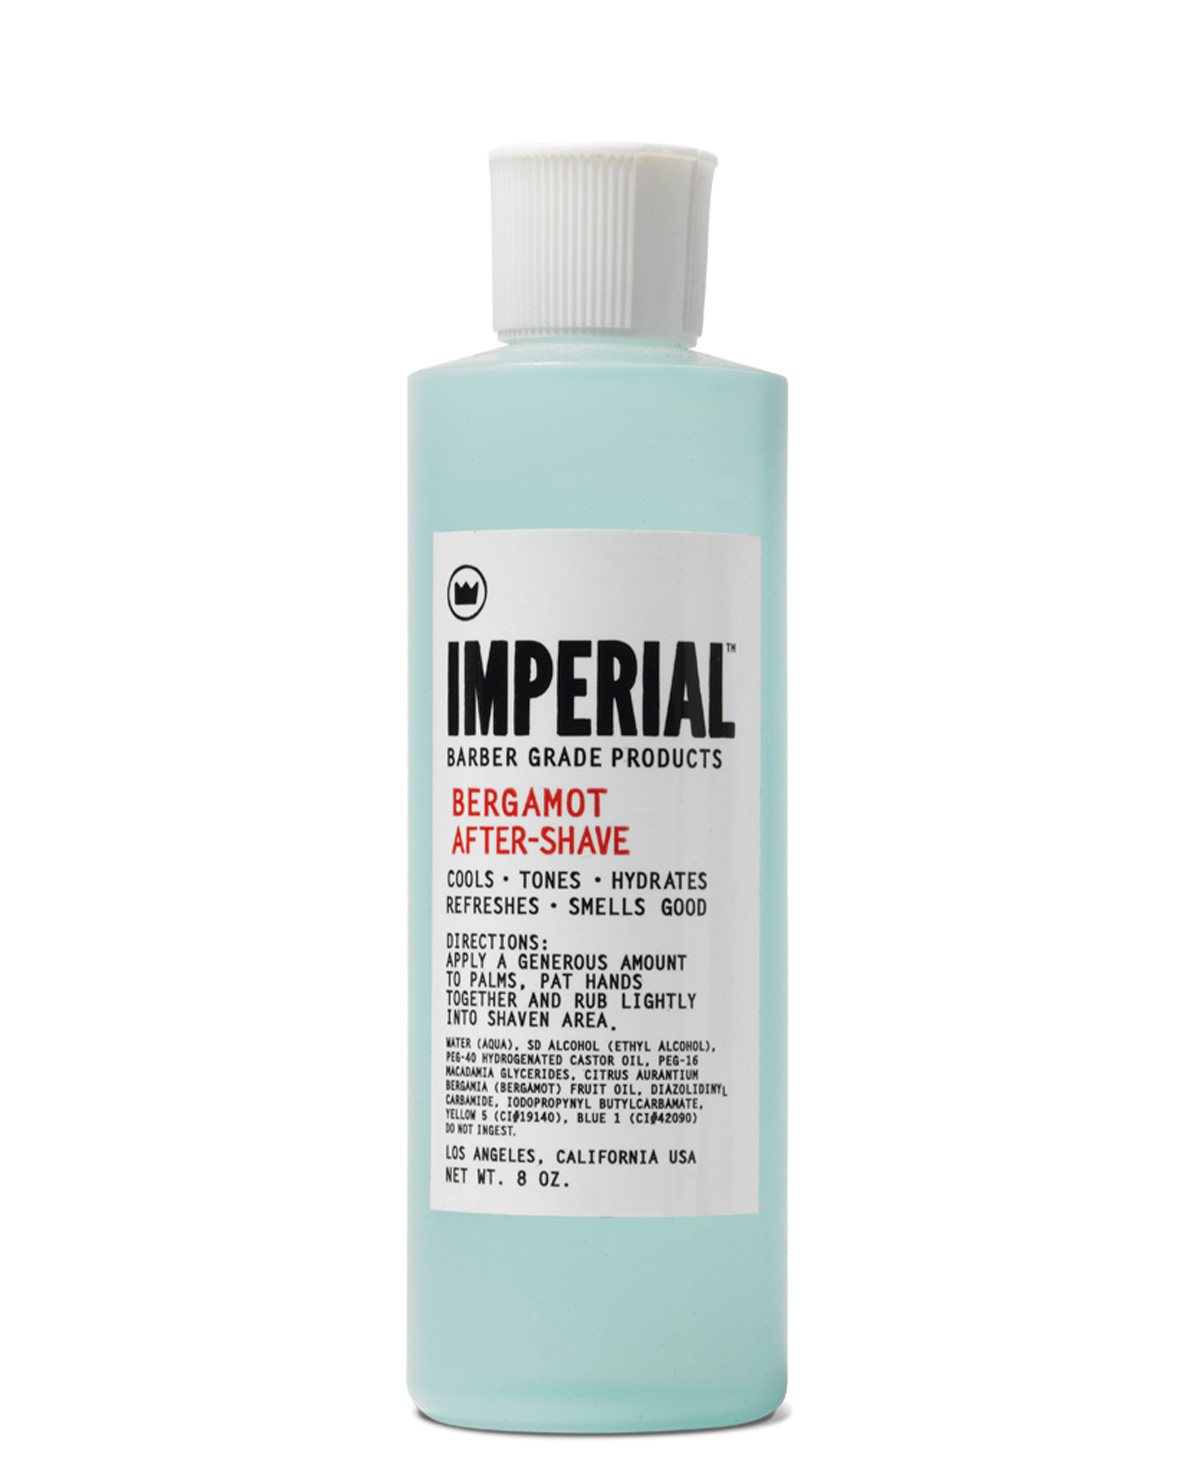 Imperial Bergamot After-Shave 265ml